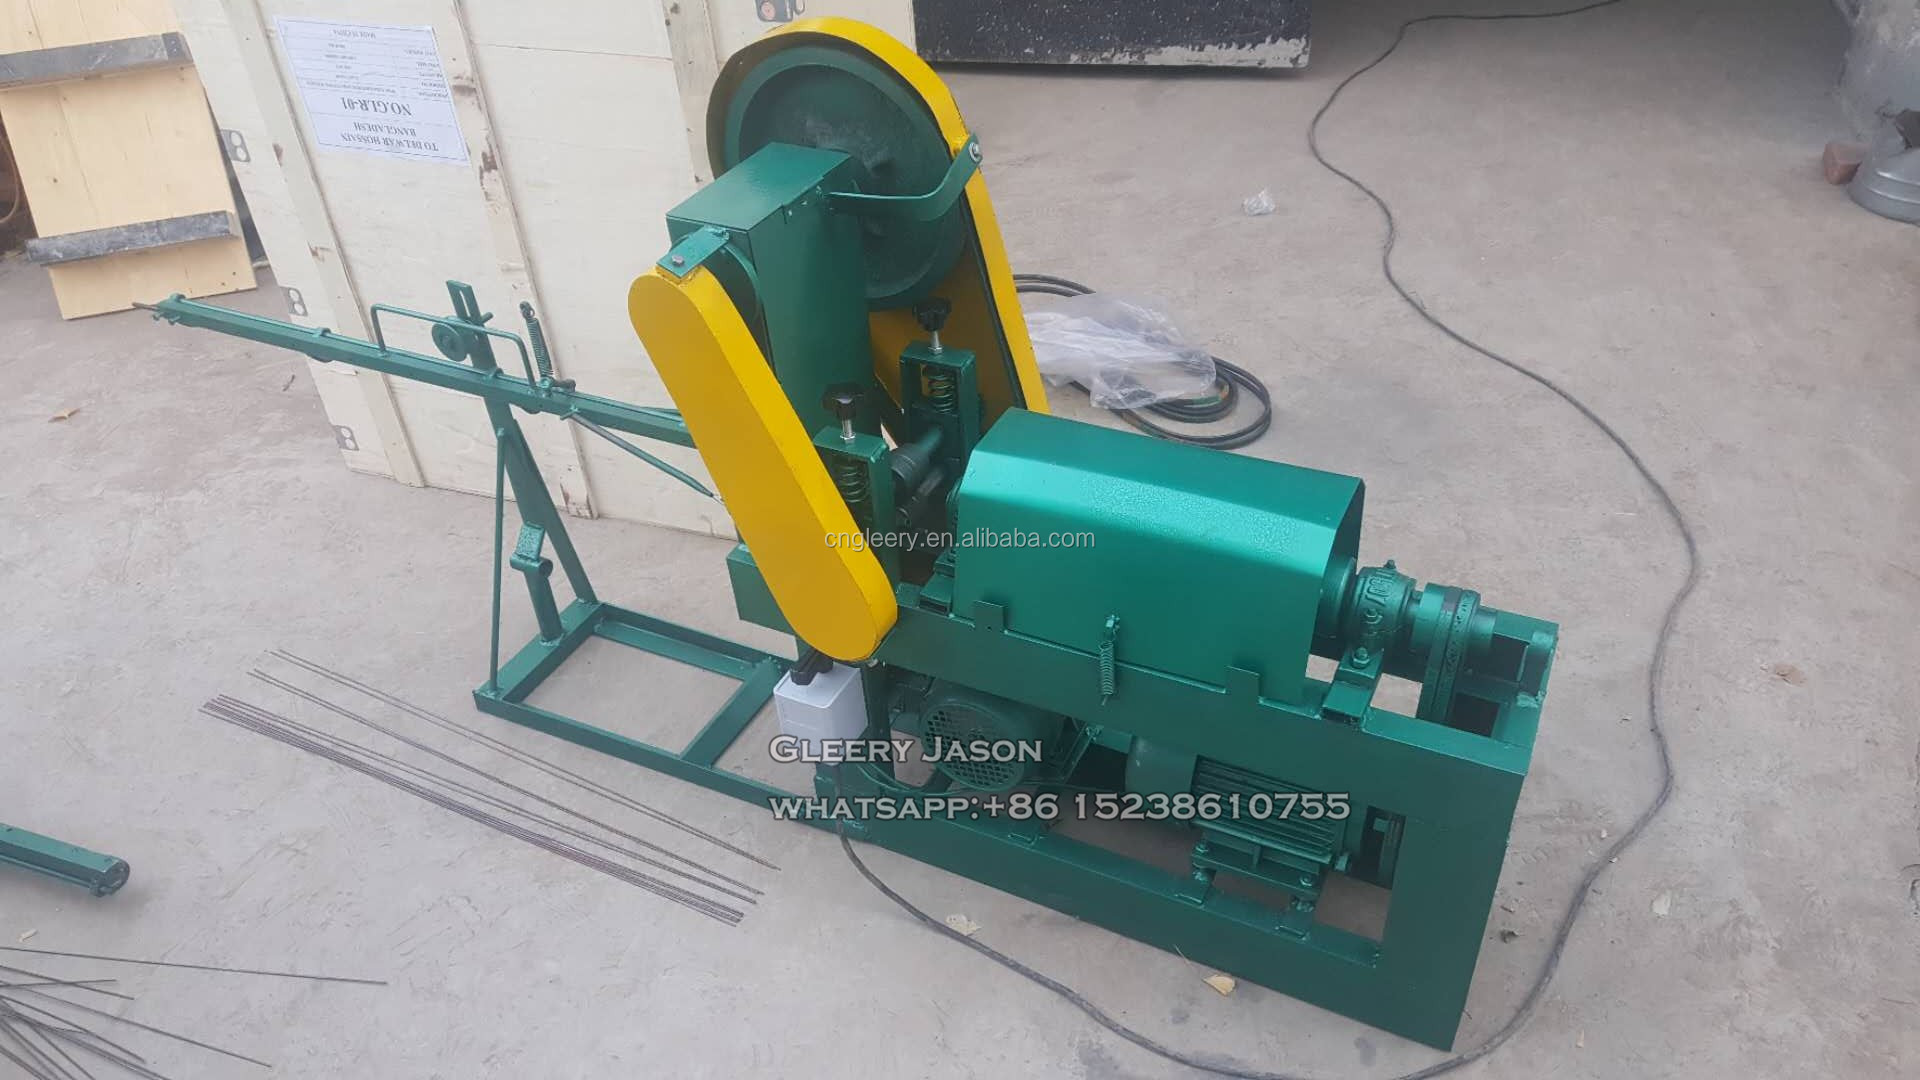 GLR3-6 Small type zero error mechanical type steel wire straight and cut machine